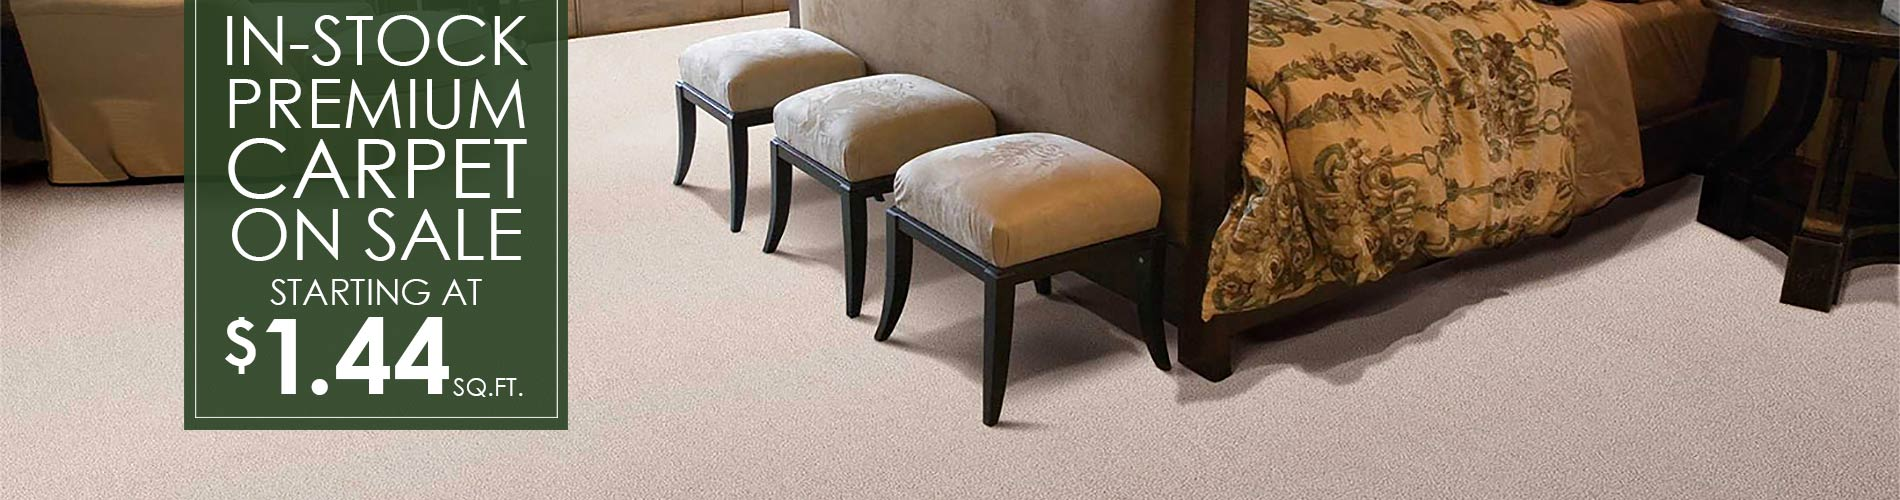 In-stock premium carpet on sale now starting at $1.44 sq.ft. this month at Bennington House of Tile & Carpet!